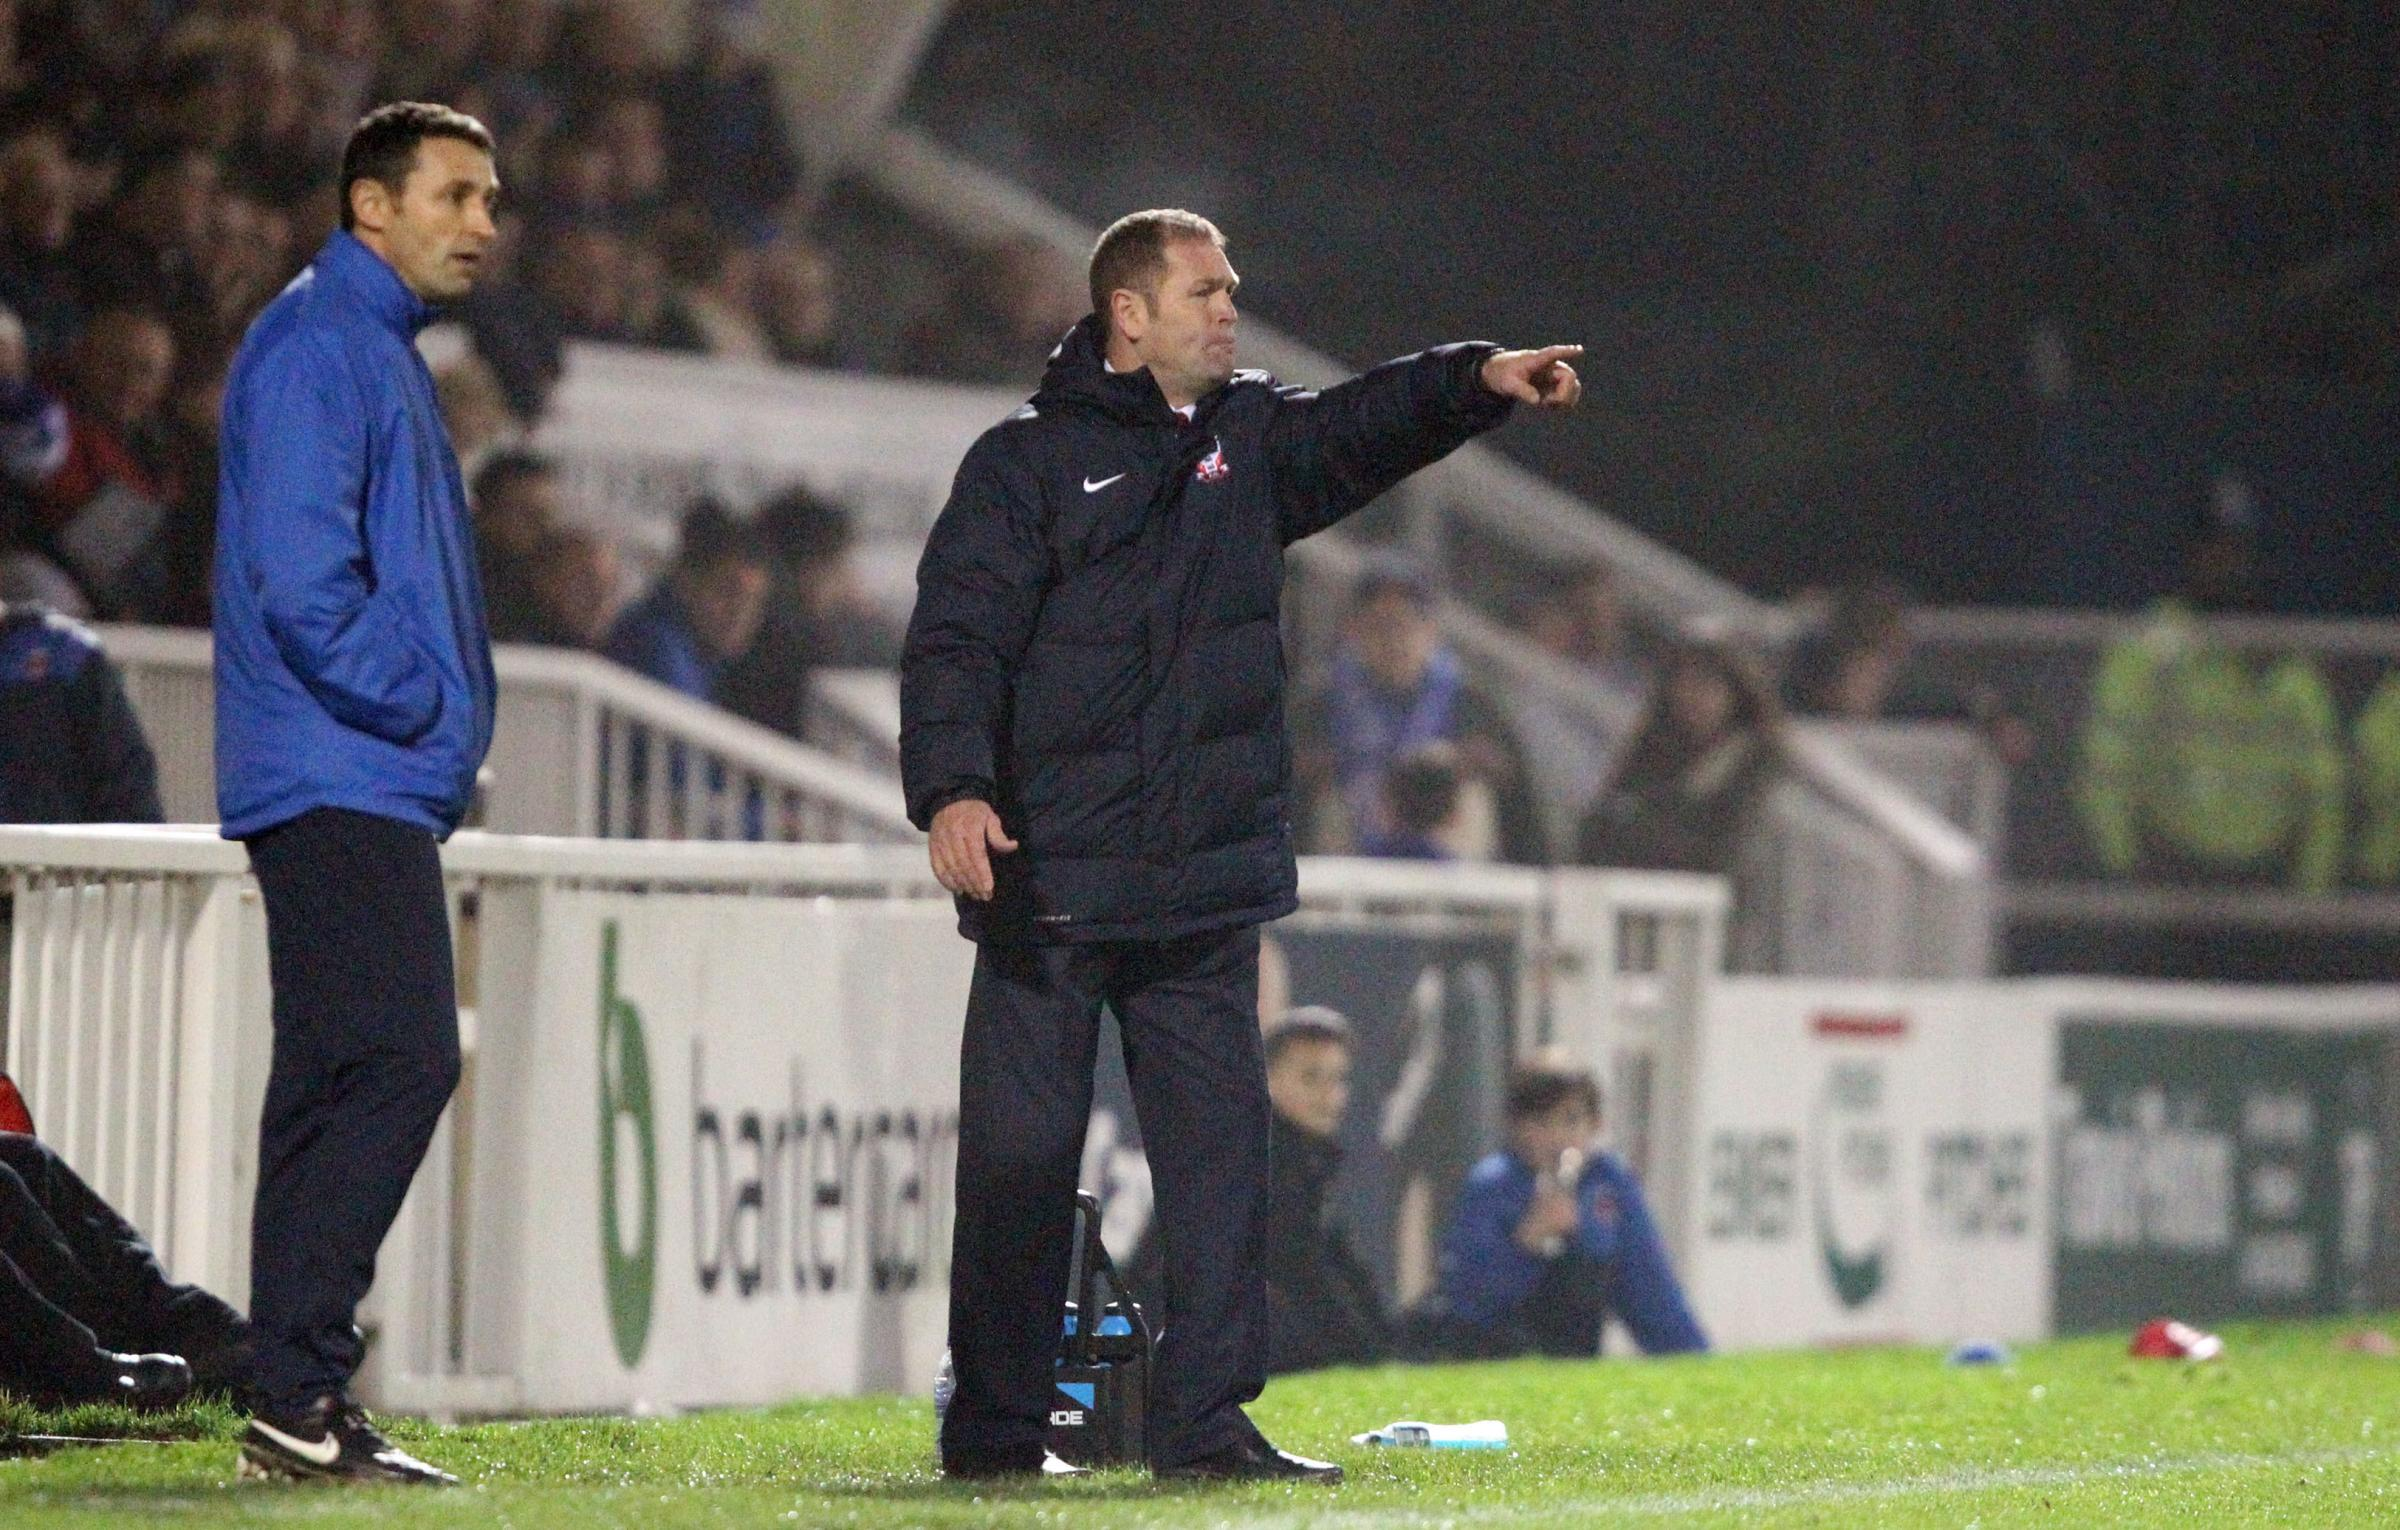 MAKING HIS POINT: York City chief does not believe his team have a weakness in defending corners